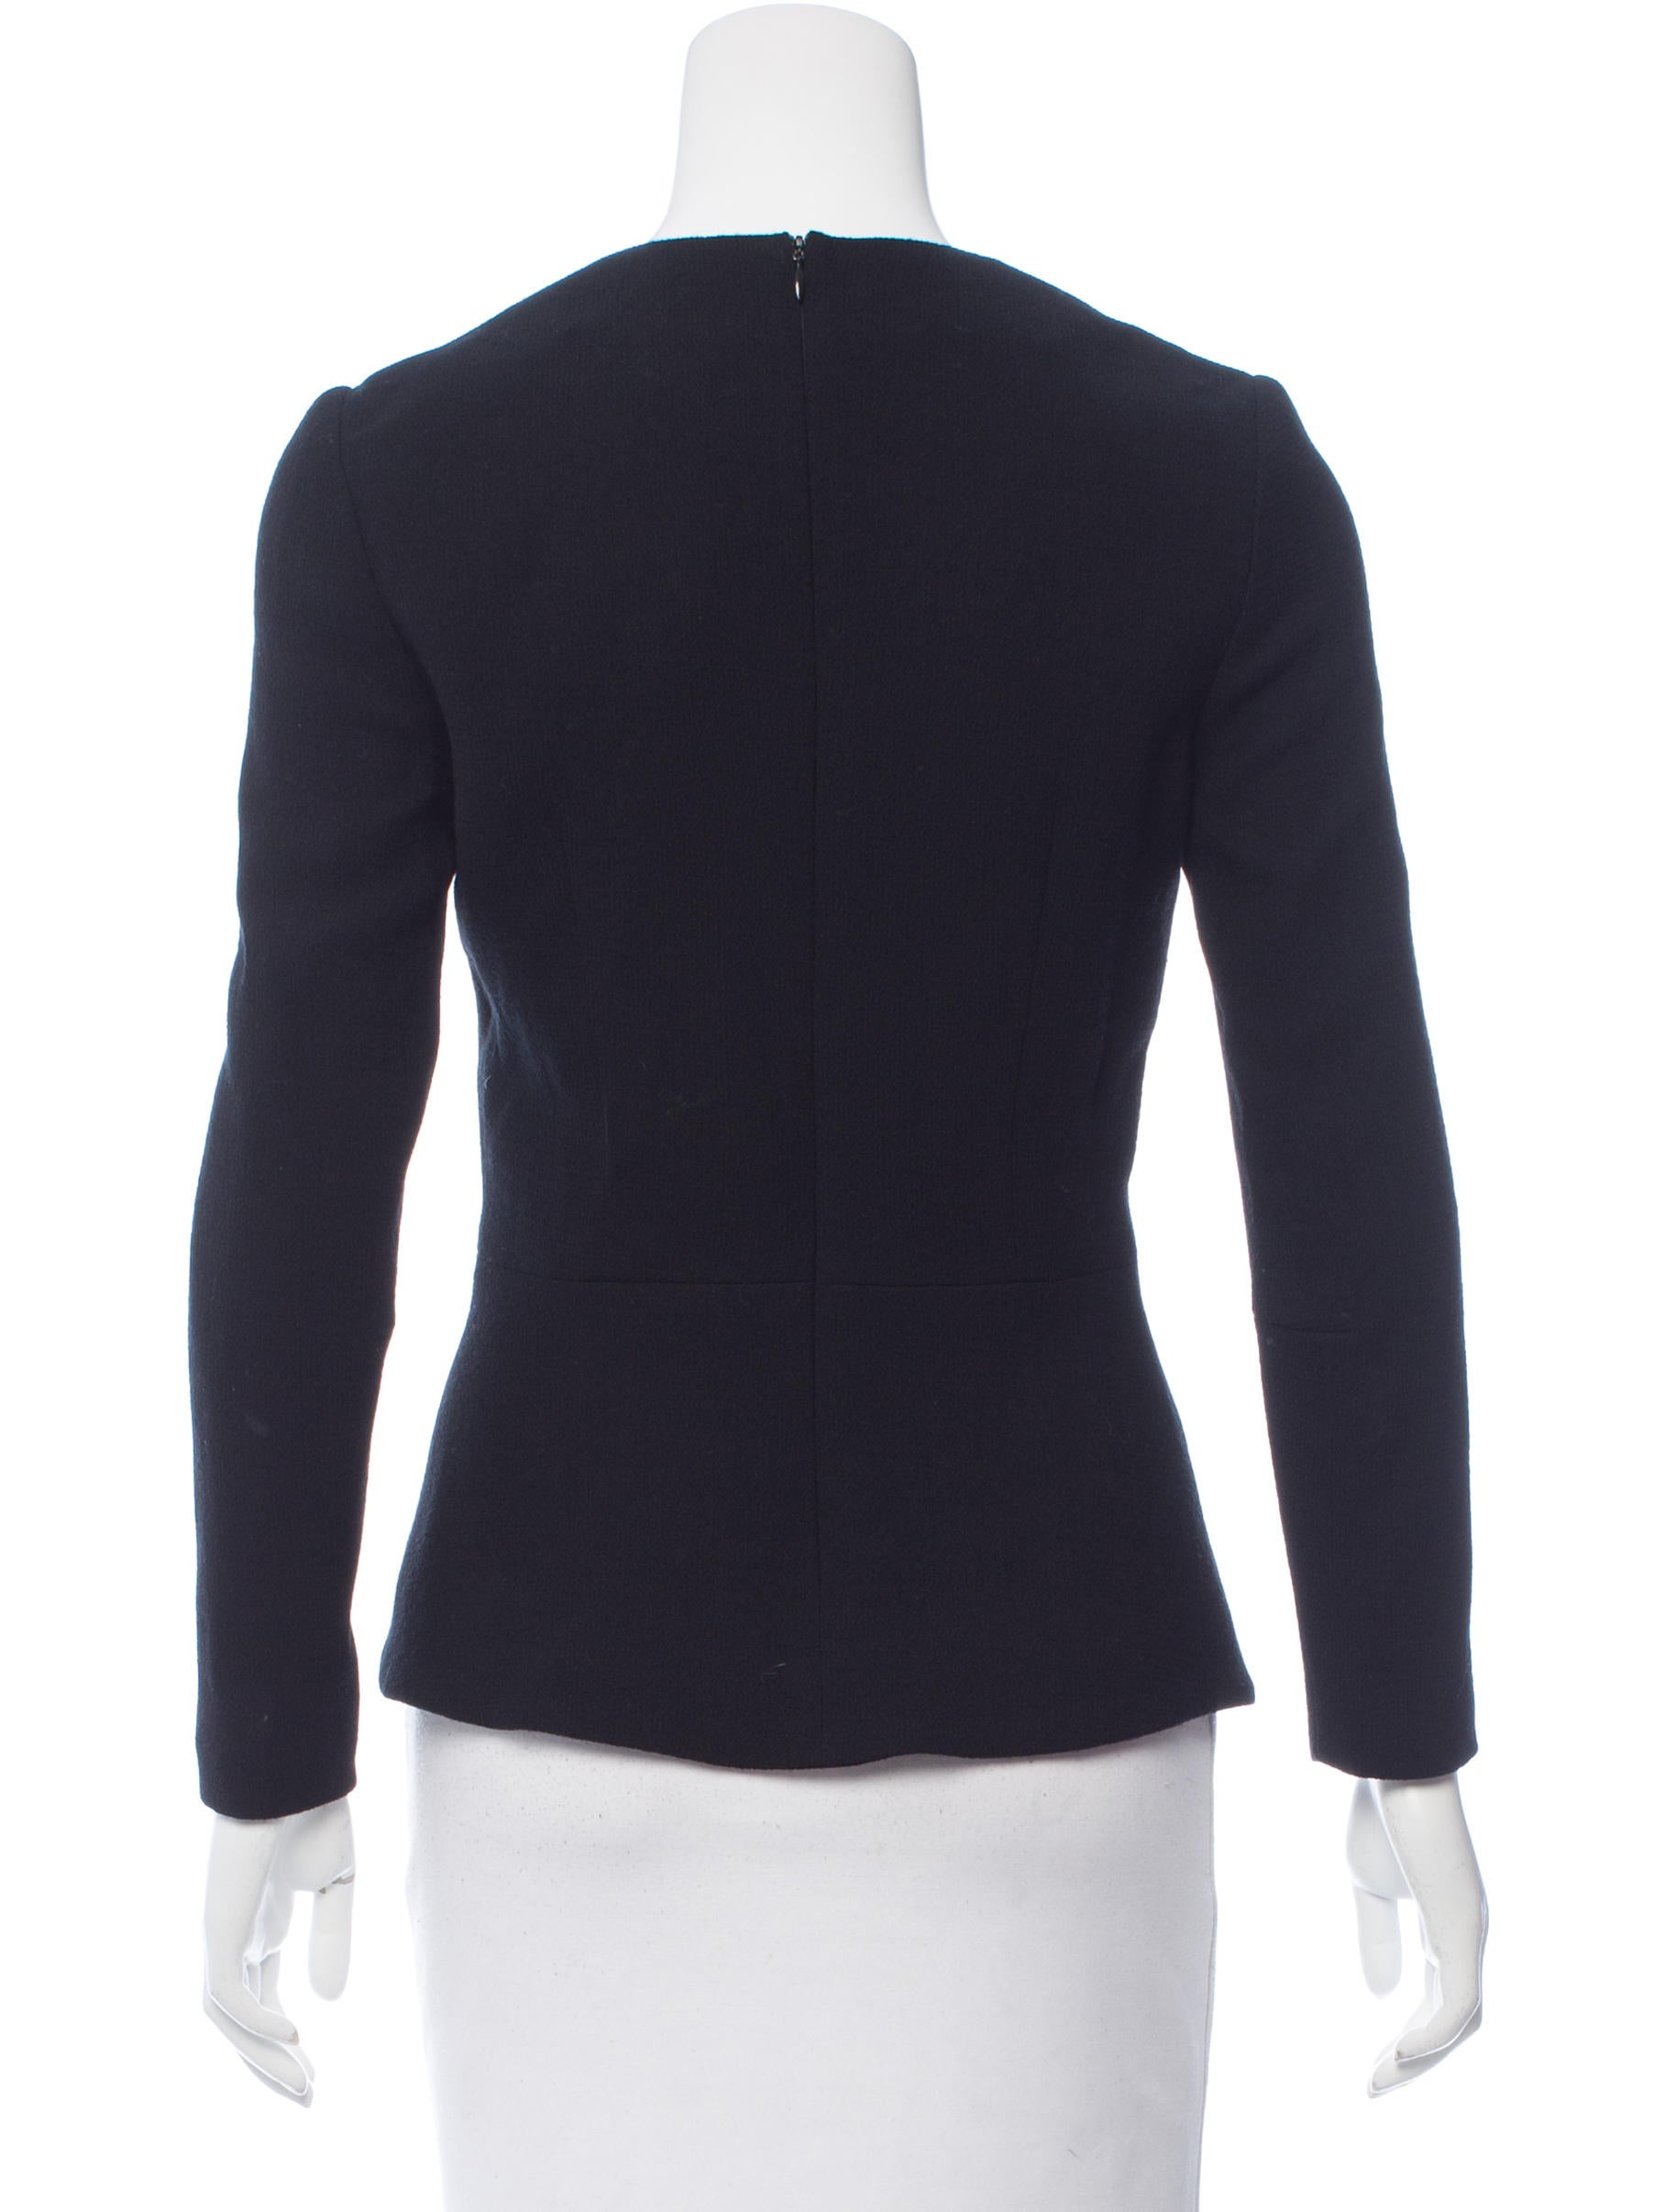 Hellessy wool zip up top clothing helle20126 the for Best wool shirt jackets